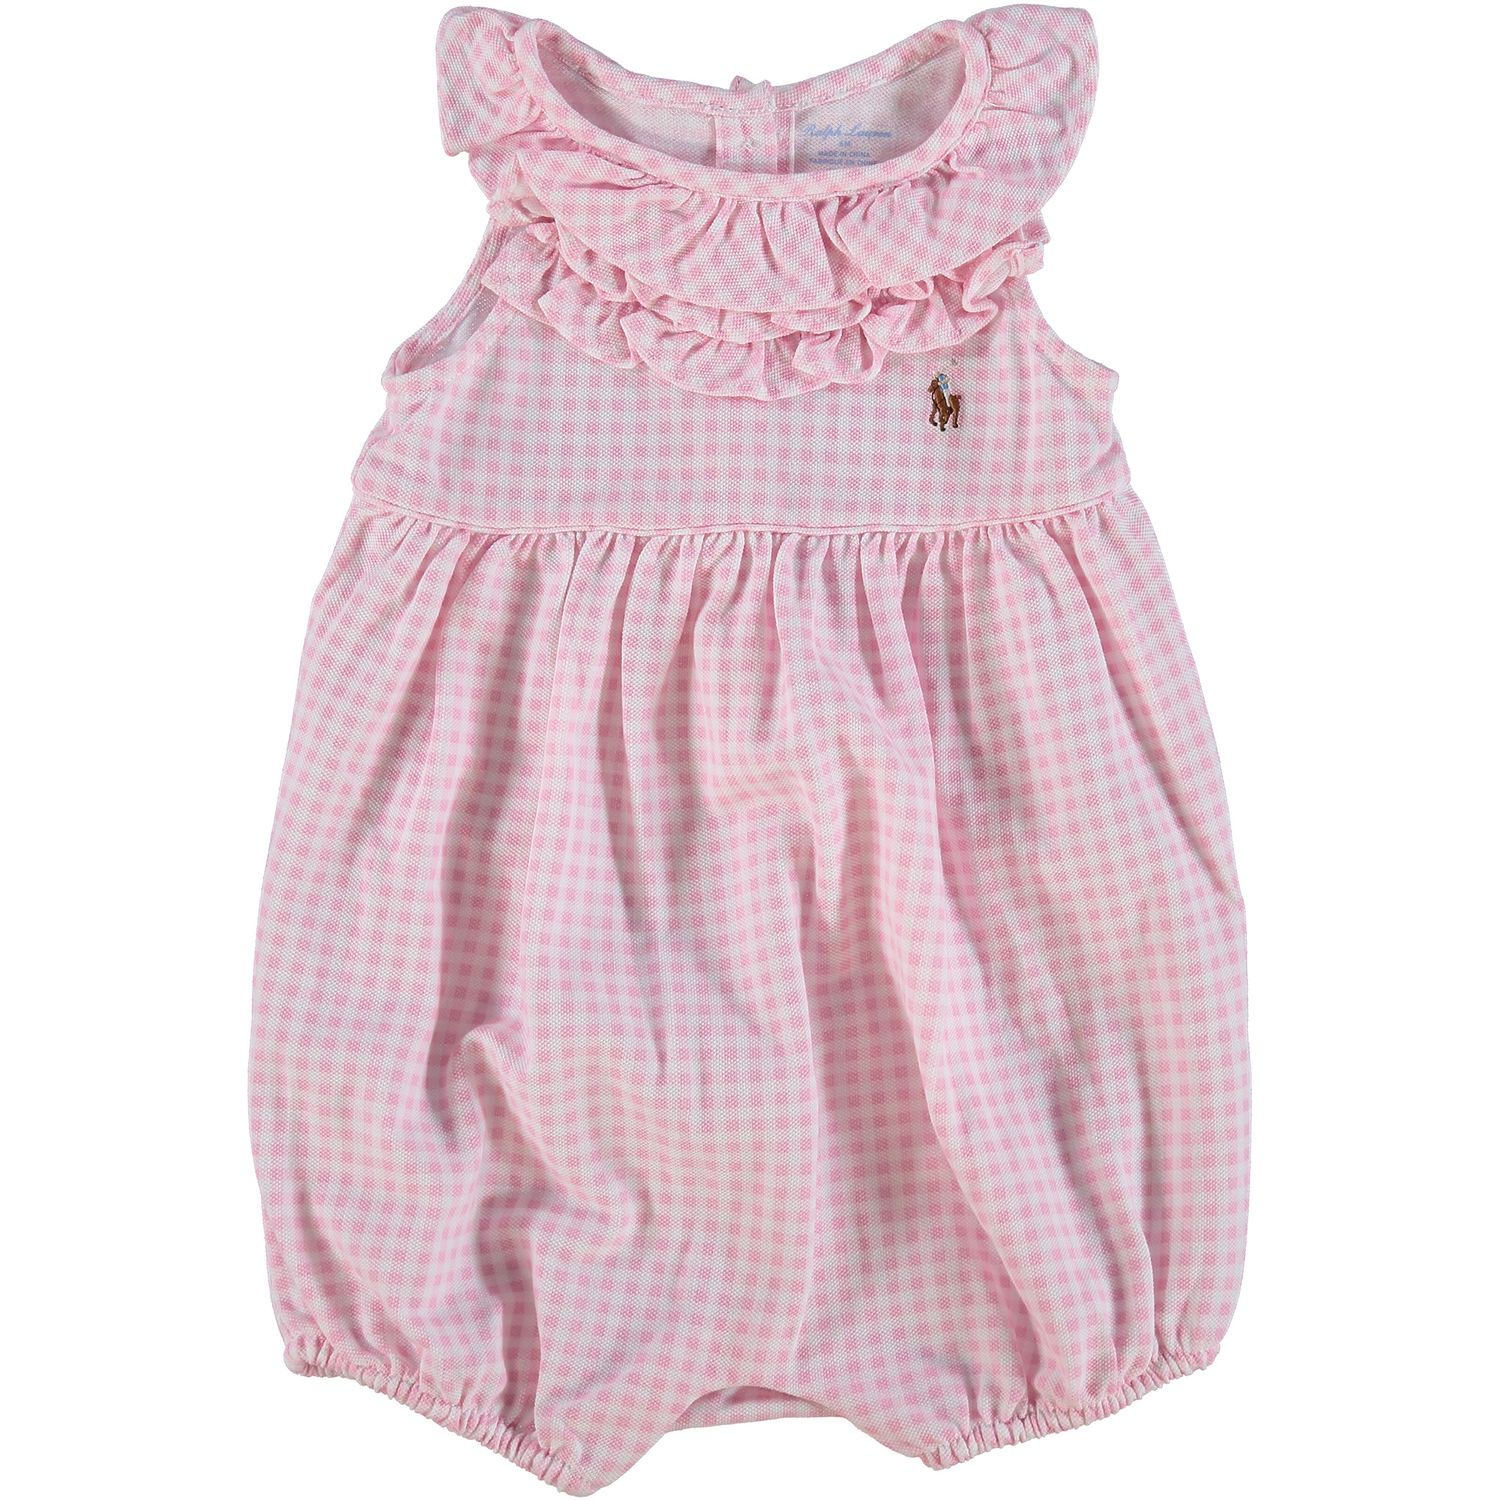 Pink Gingham All In One - Baby Girl - Baby & Nursery - Kids & Toys - TK Maxx